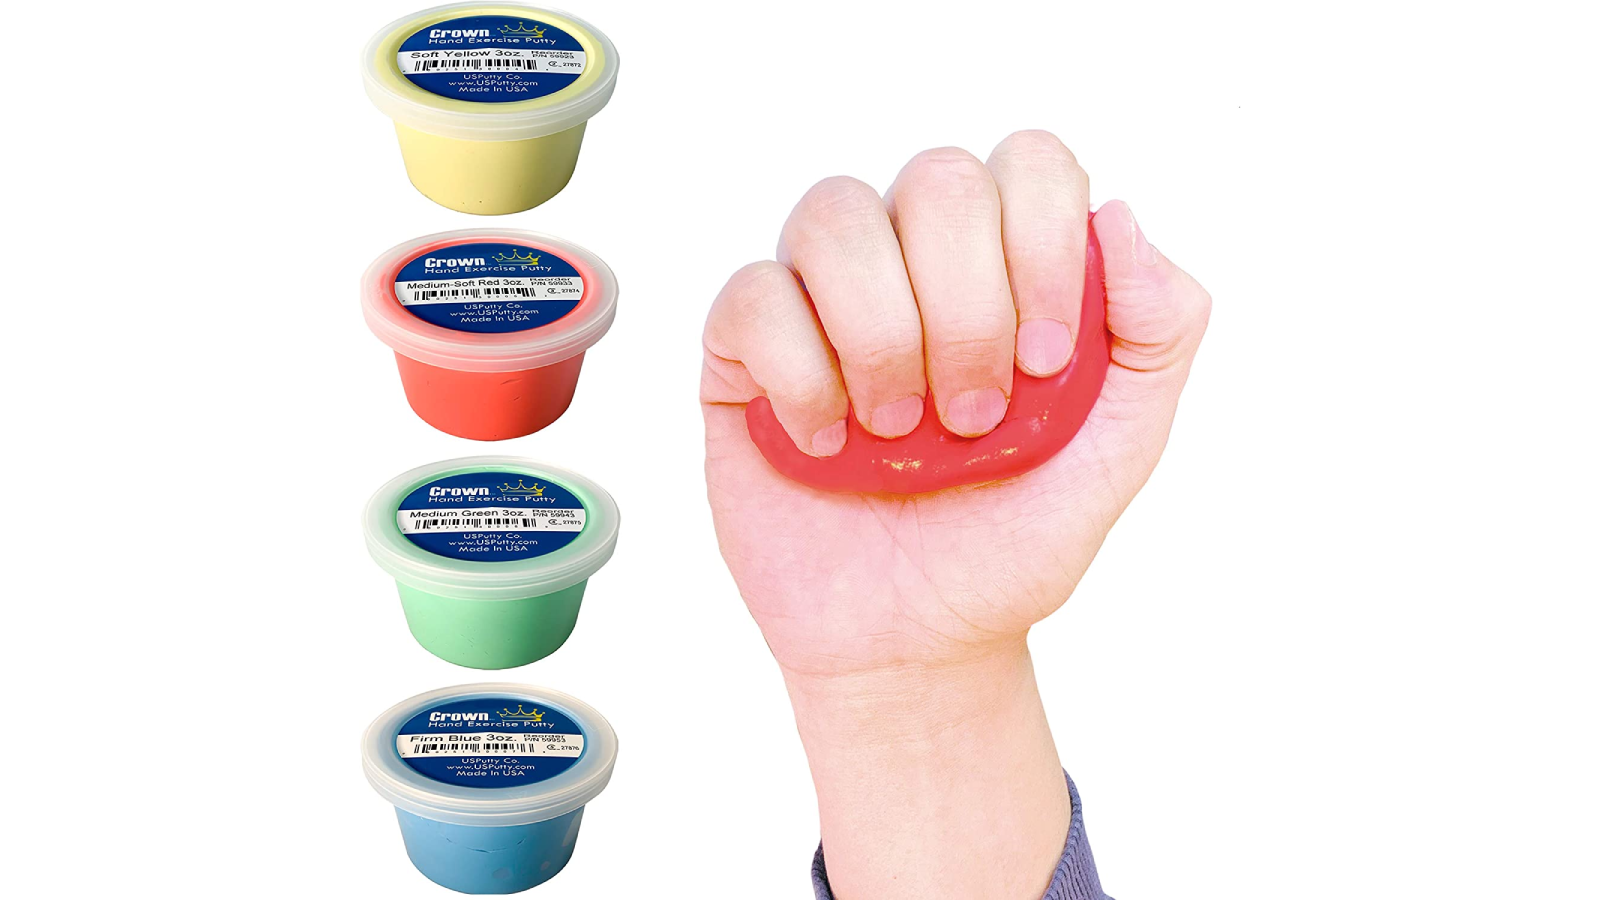 Four containers, each with different color putty in column on left with a hand squeezing red putty on the right.